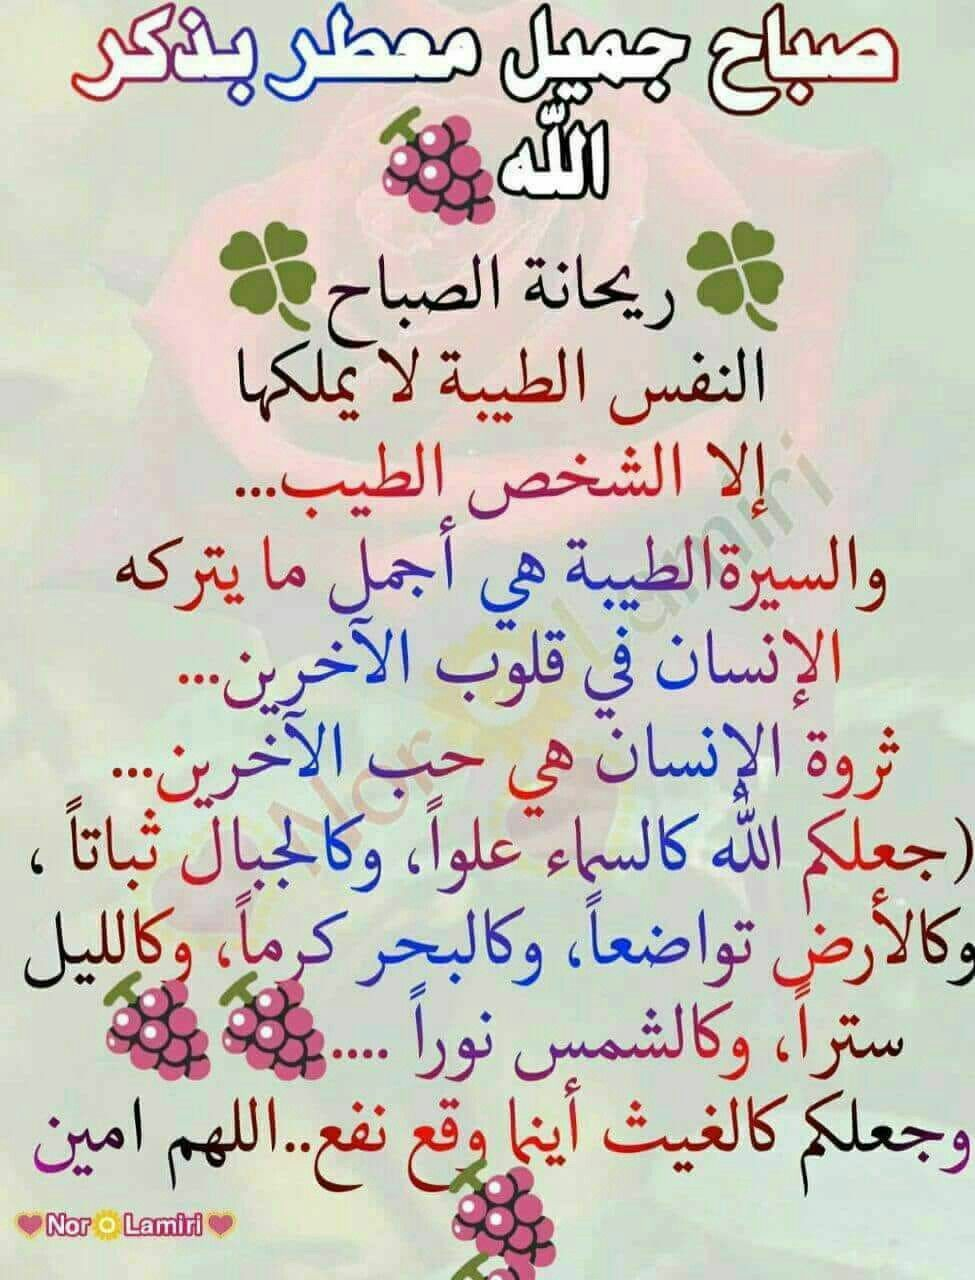 Pin By Chamsdine Chams On صباح مساء الخير Good Morning Quotes Image Quotes Morning Quotes